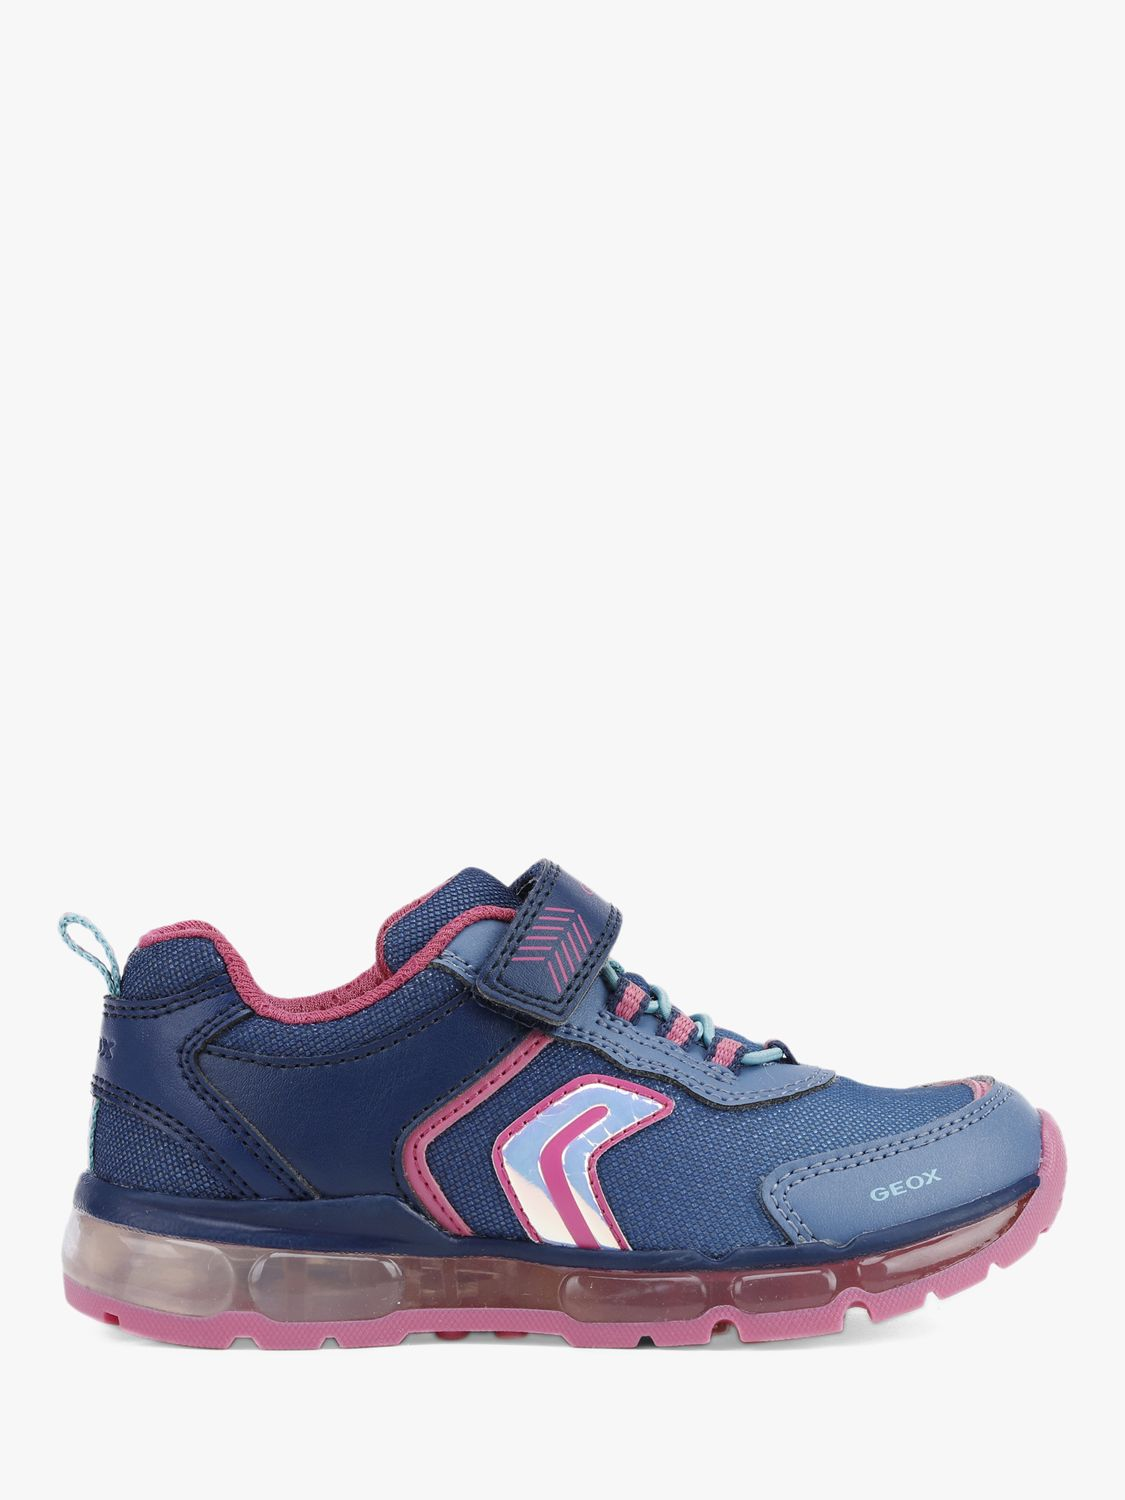 Geox Geox Children's Light Up Android Trainers, Navy/Pink